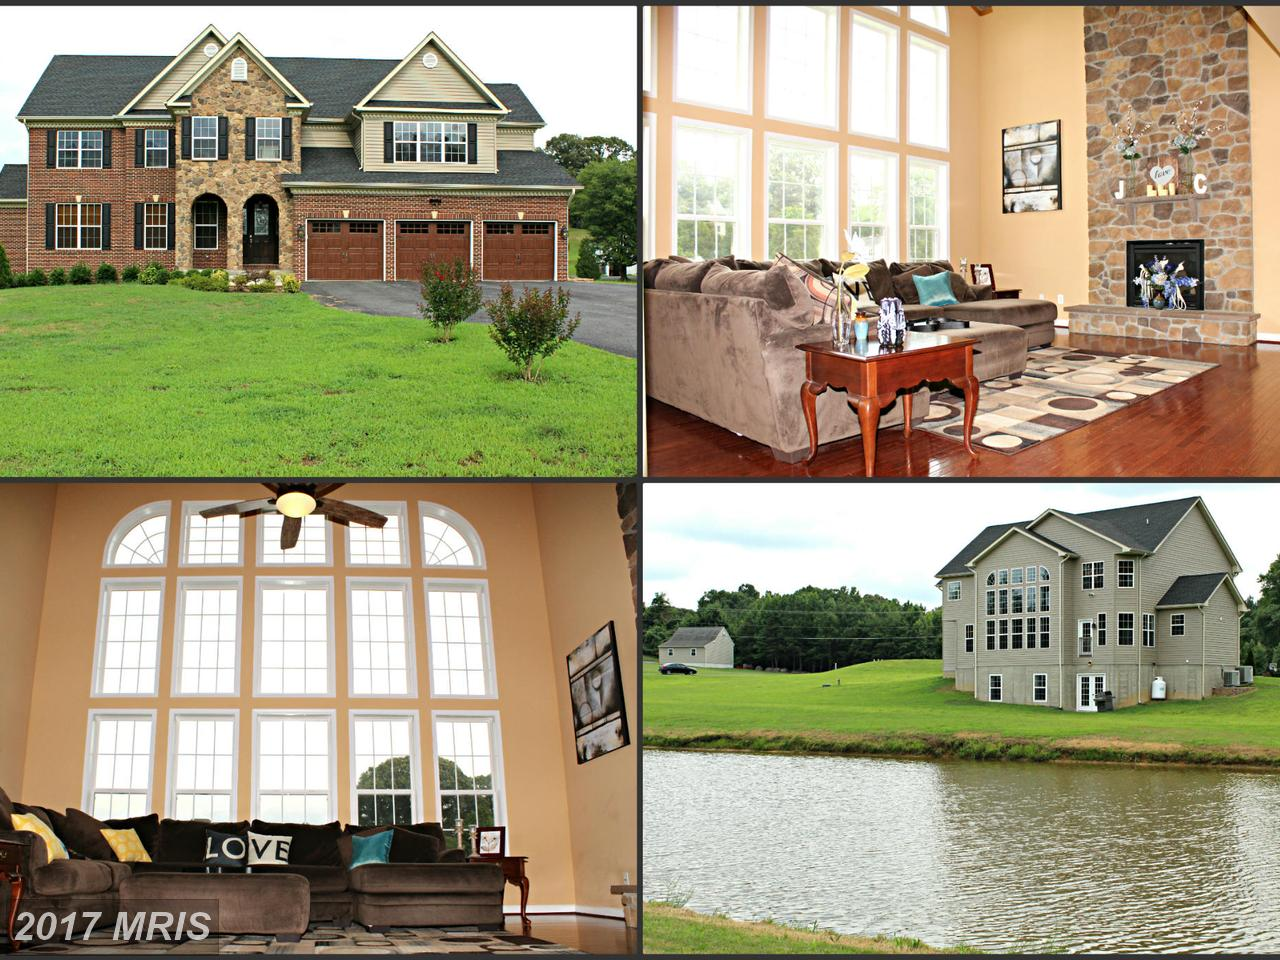 4 bedroom homes for sale in hughesville md hughesville for Cost to build a house in maryland